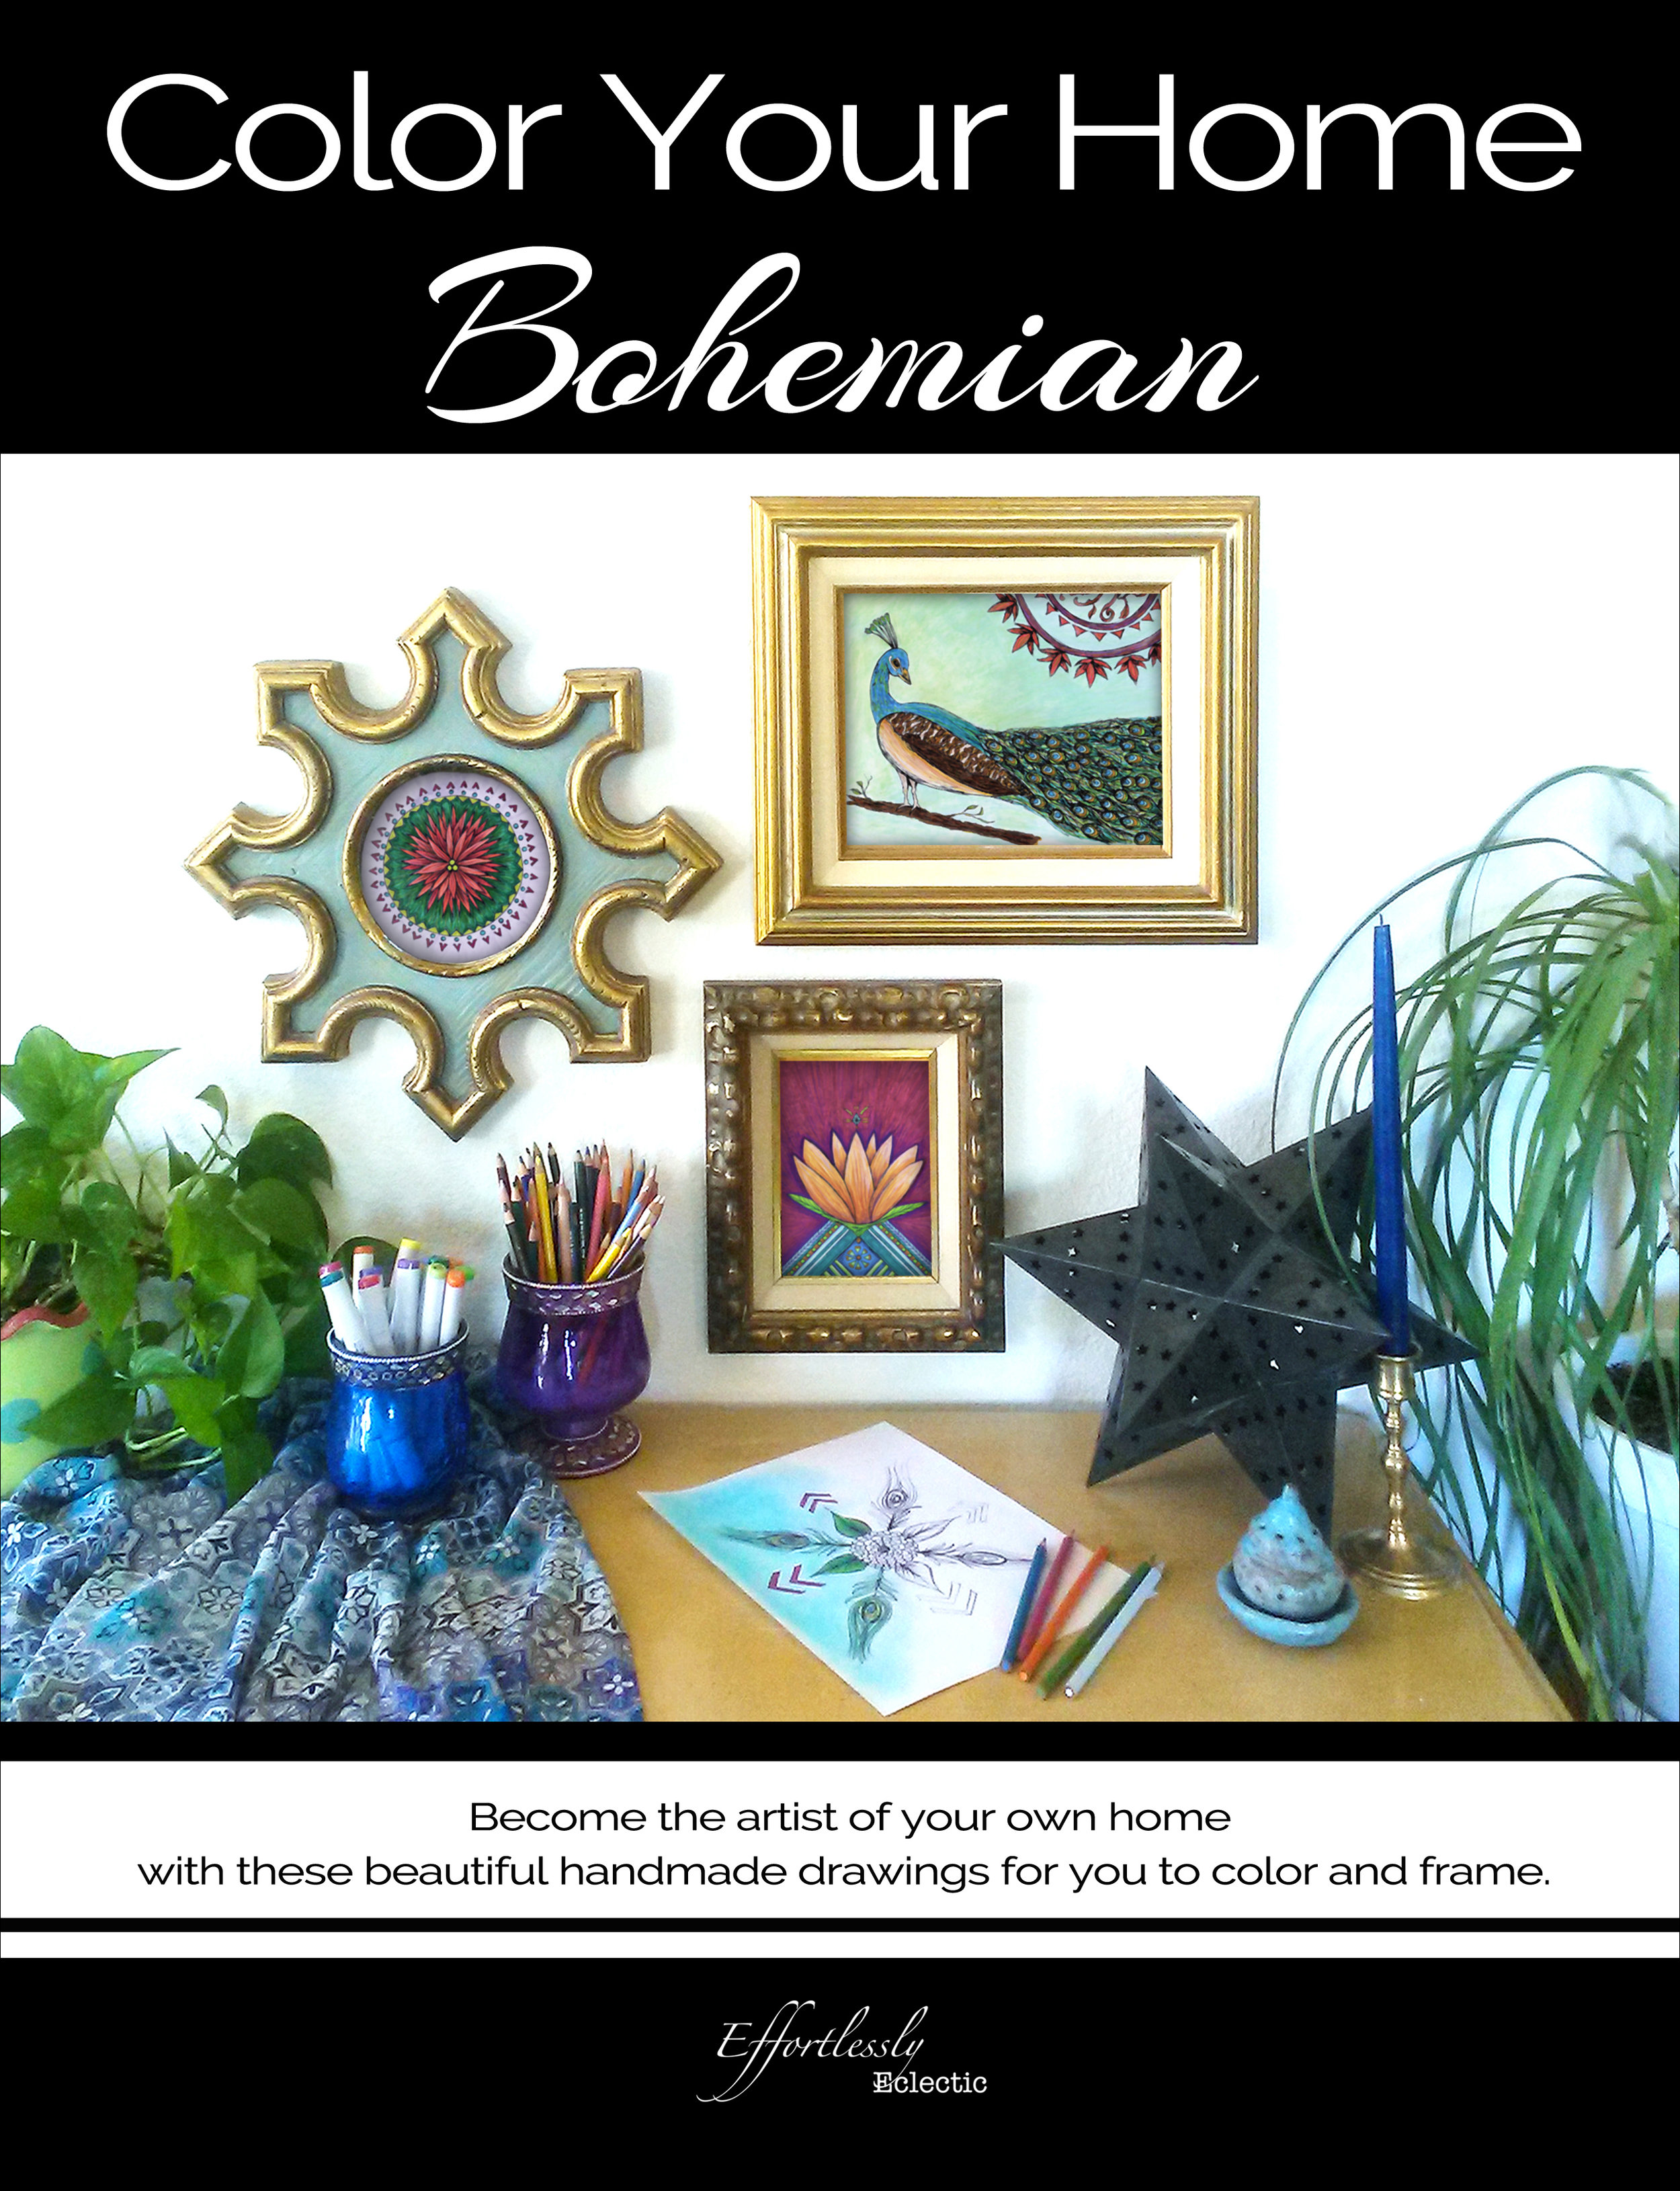 Color Your Home Bohemian by Effortlessly Eclectic